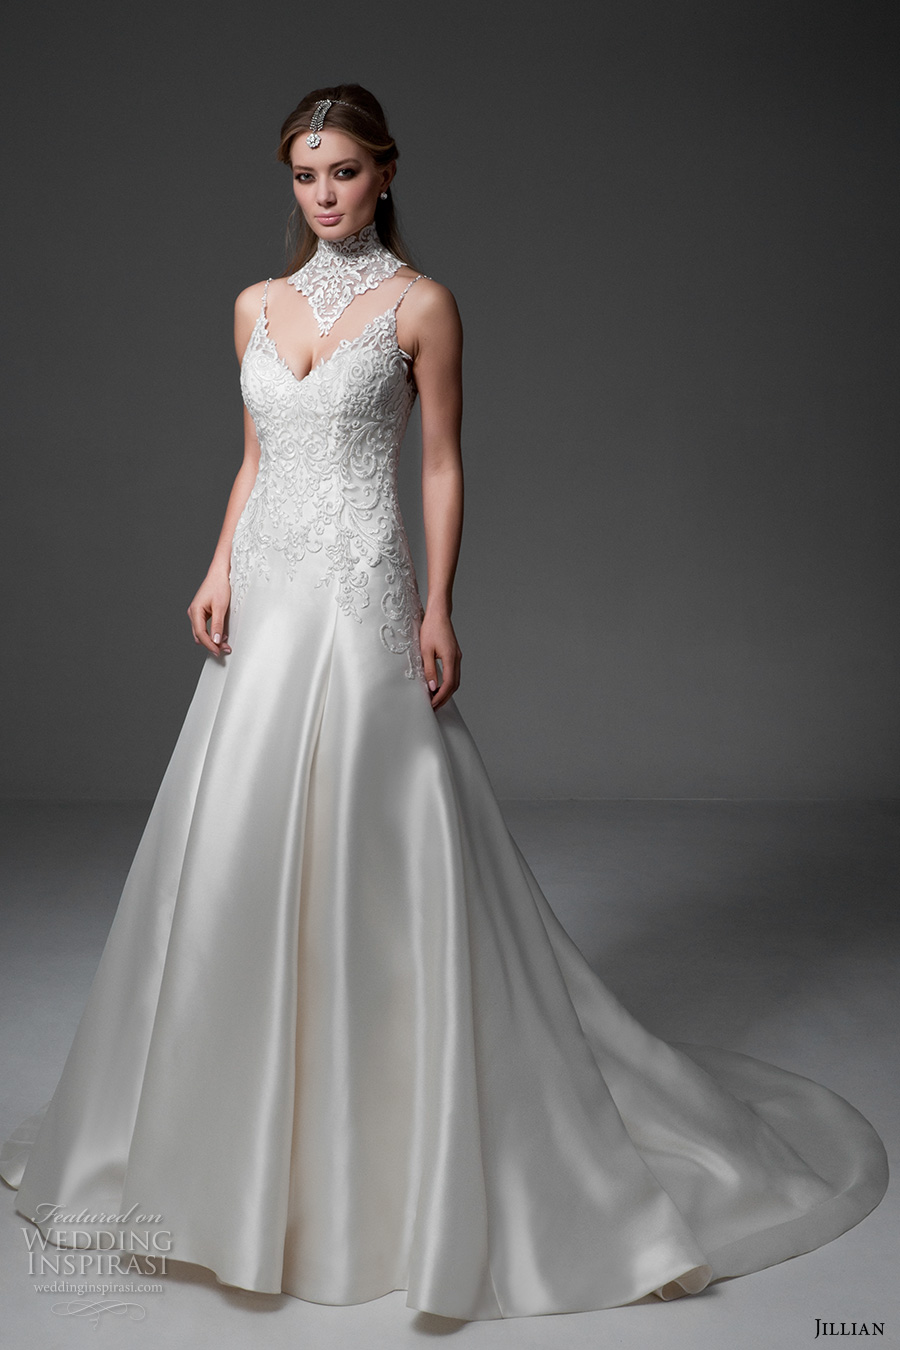 jillian 2017 bridal sleeveless spagetti strap v neck heavily embellished bodice satin glamorous a line wedding dress v back chapel train (maria) mv